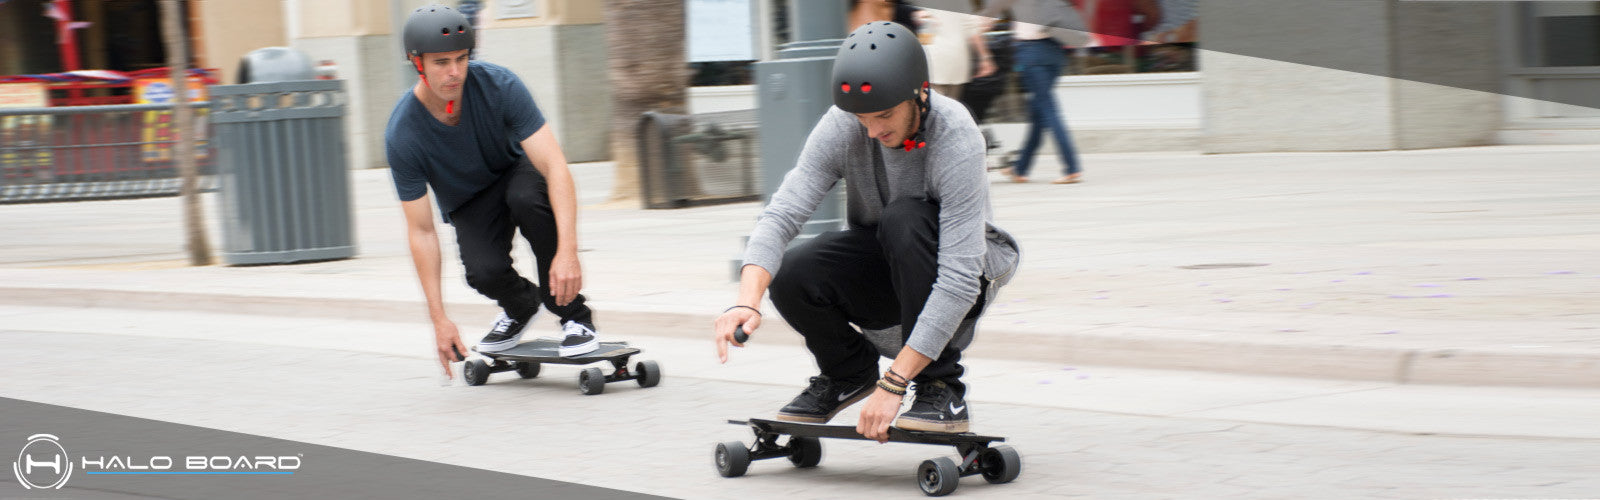 Halo Board electric skateboard cruising Santa Monica 2017